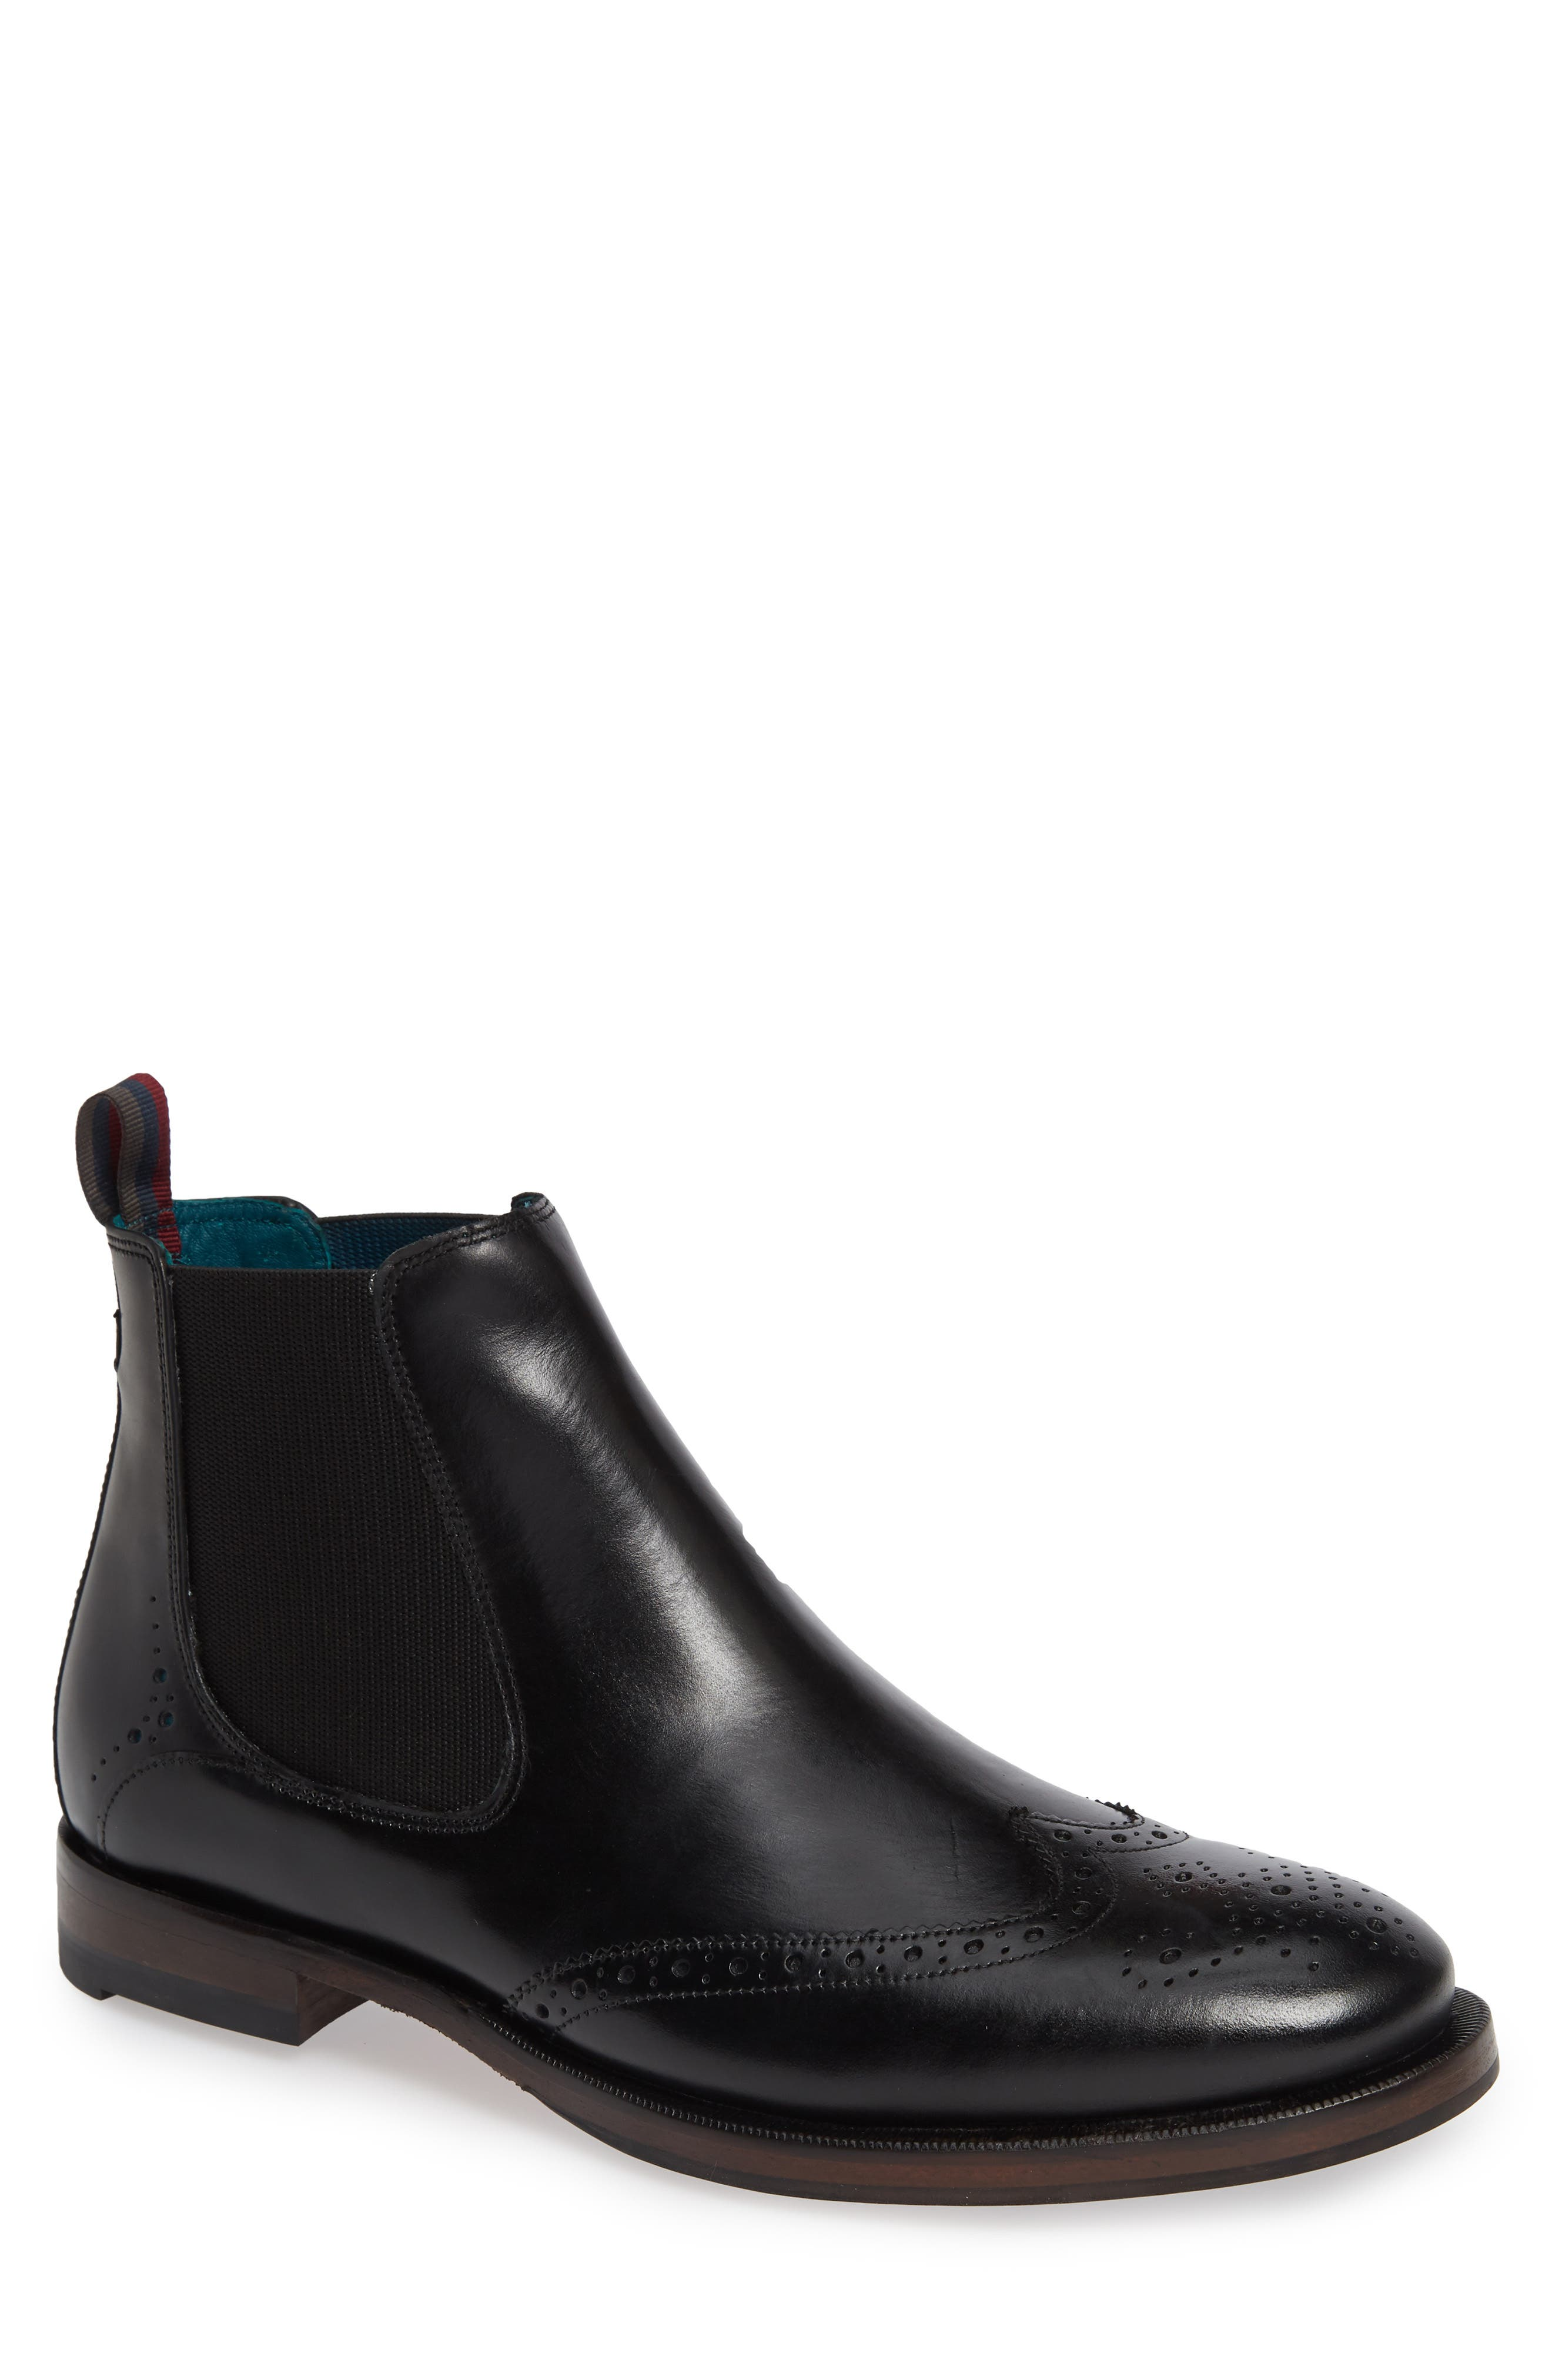 Camheri Wingtip Chelsea Boot,                         Main,                         color, BLACK LEATHER